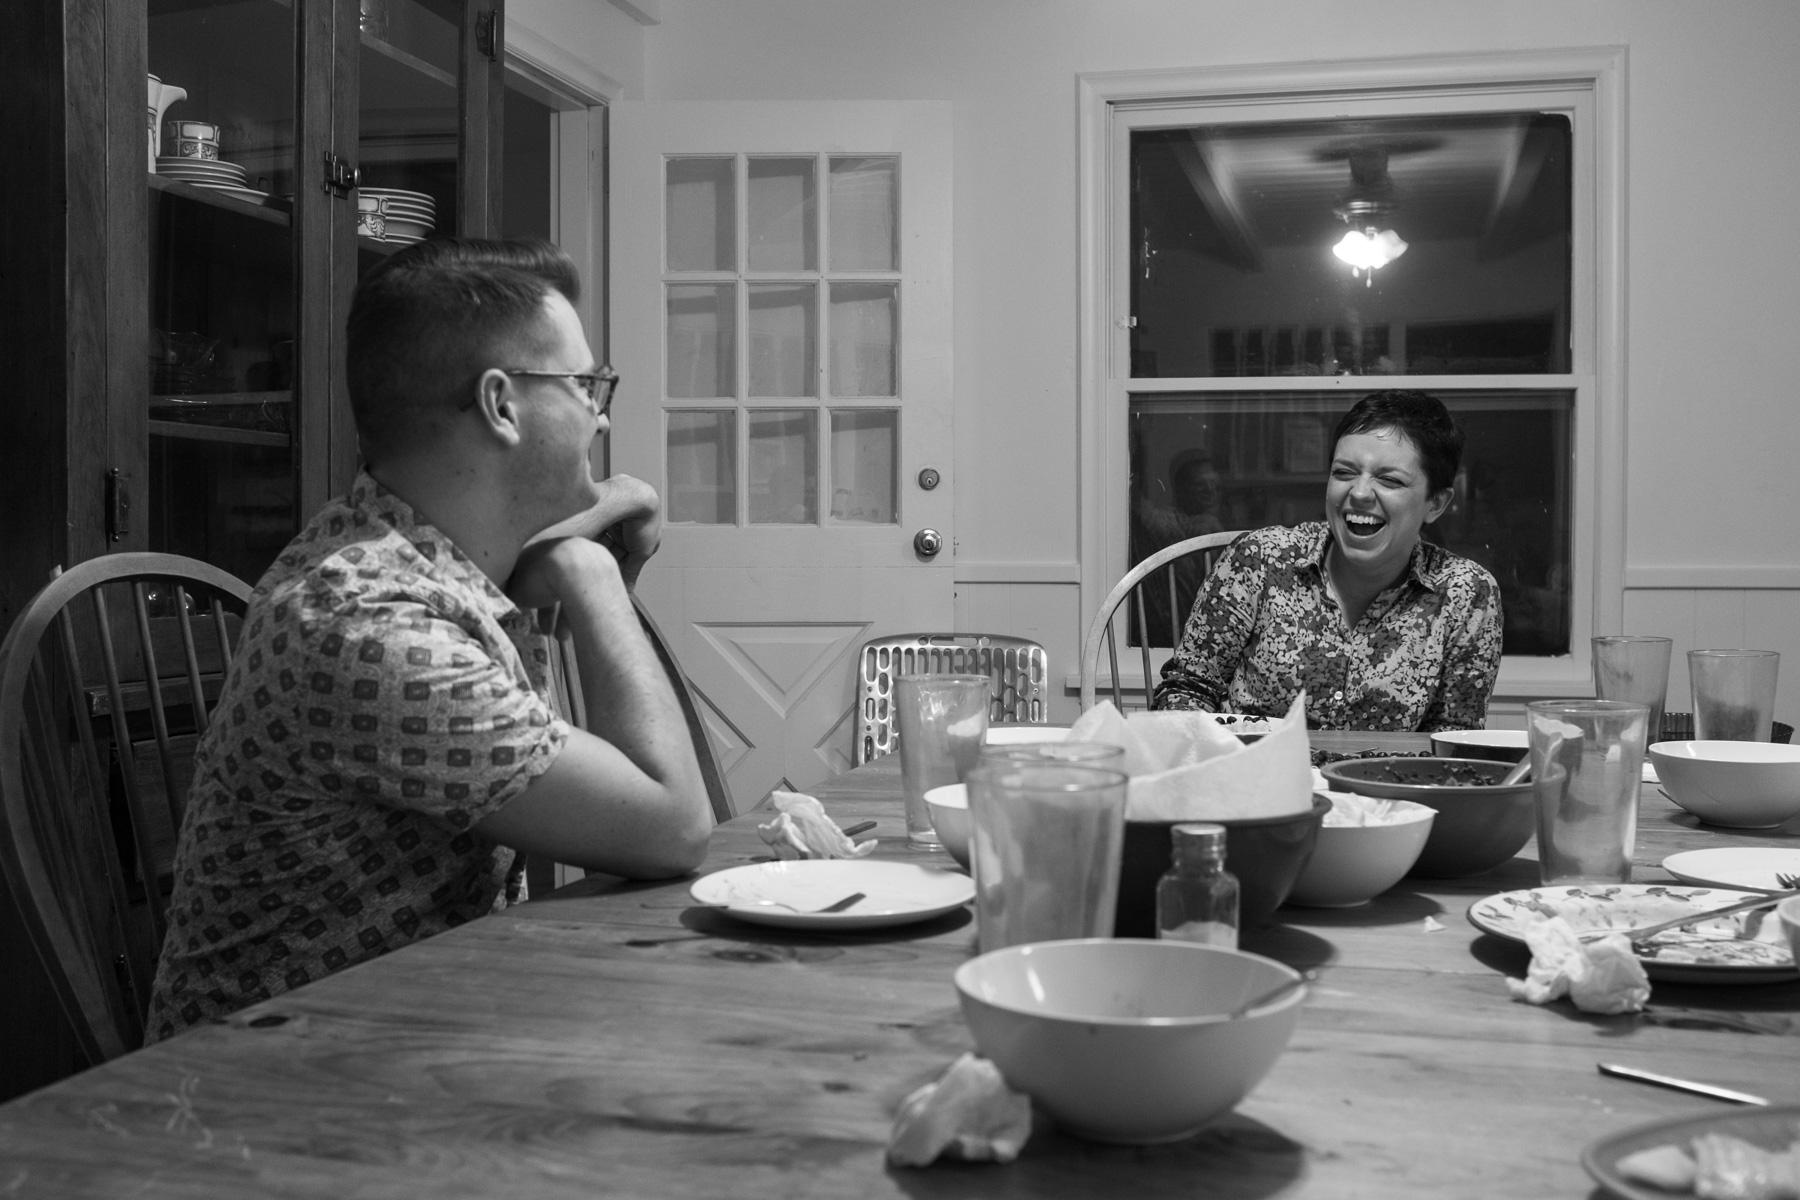 Our dear friend  Justin Hackworth  took this photo of the man and I while eating dinner together.